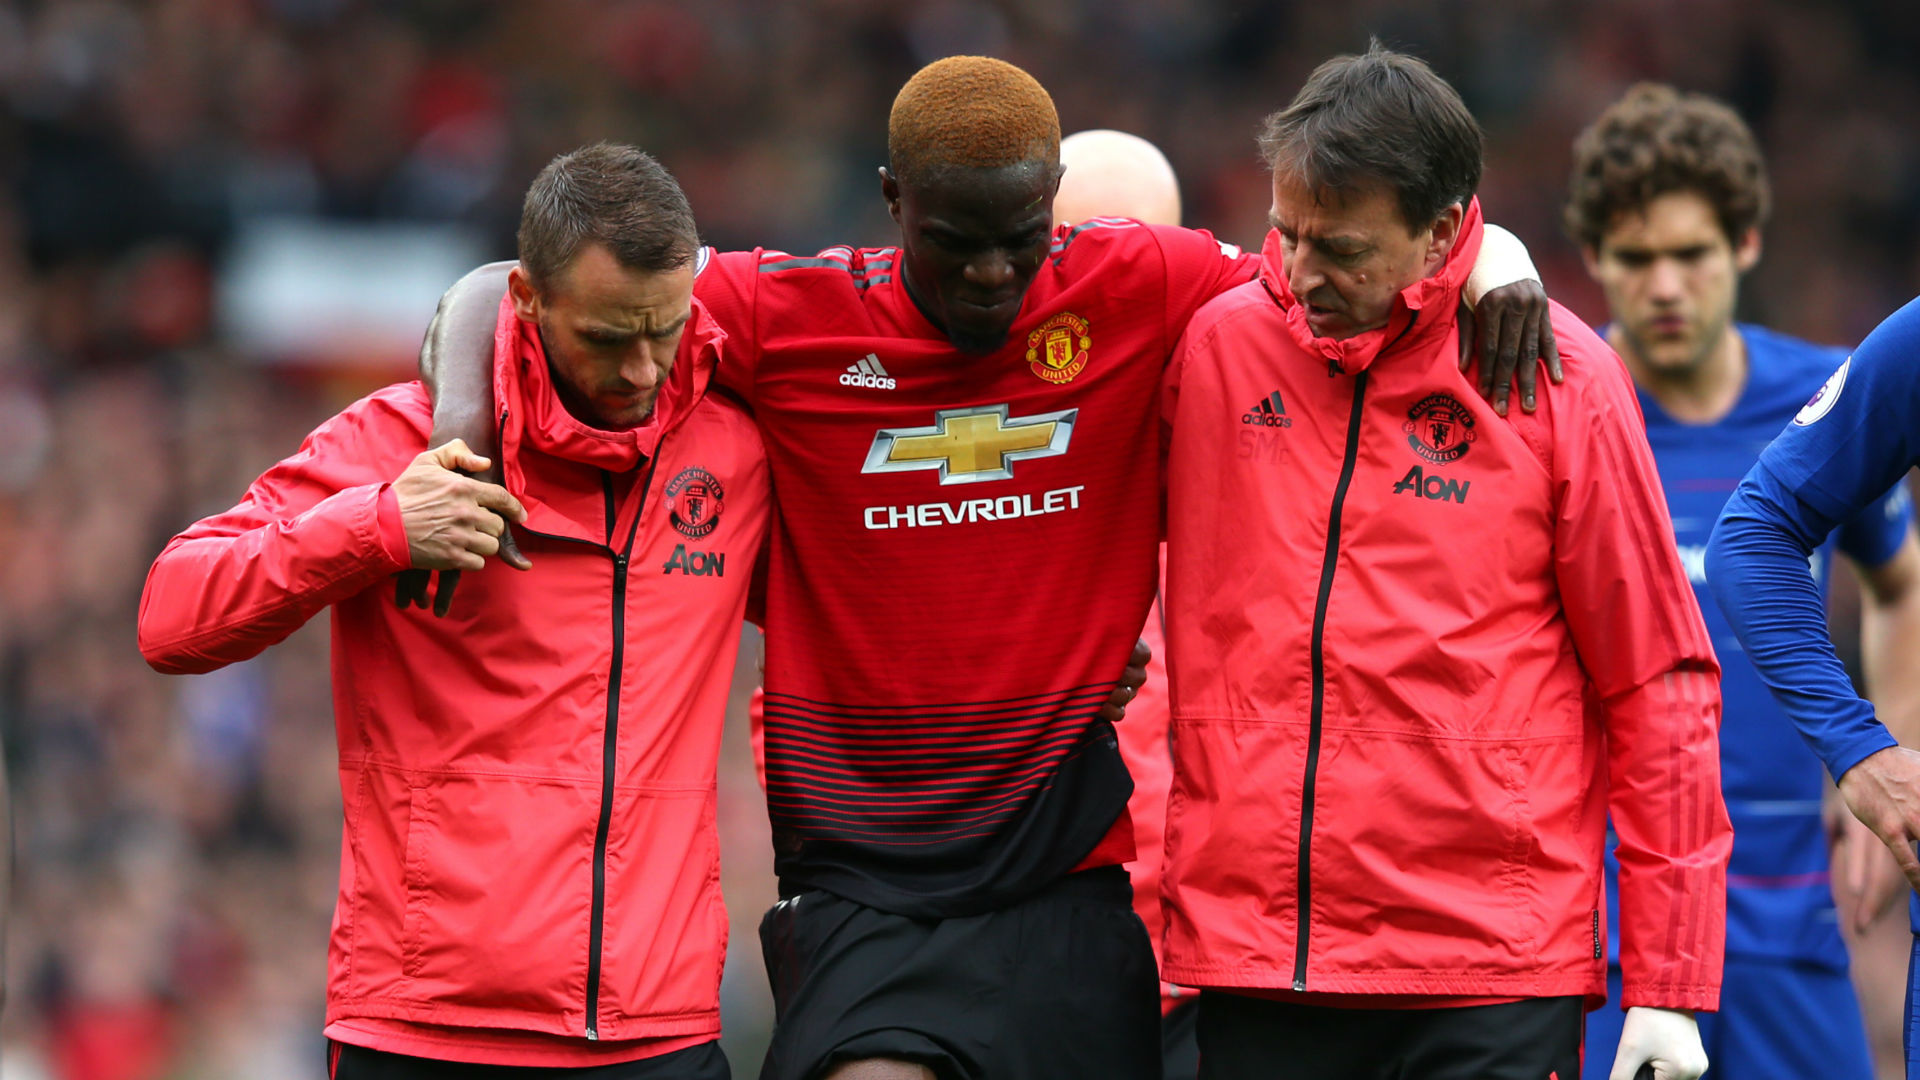 Eric Bailly confirmed absentee from AFCON after knee injury